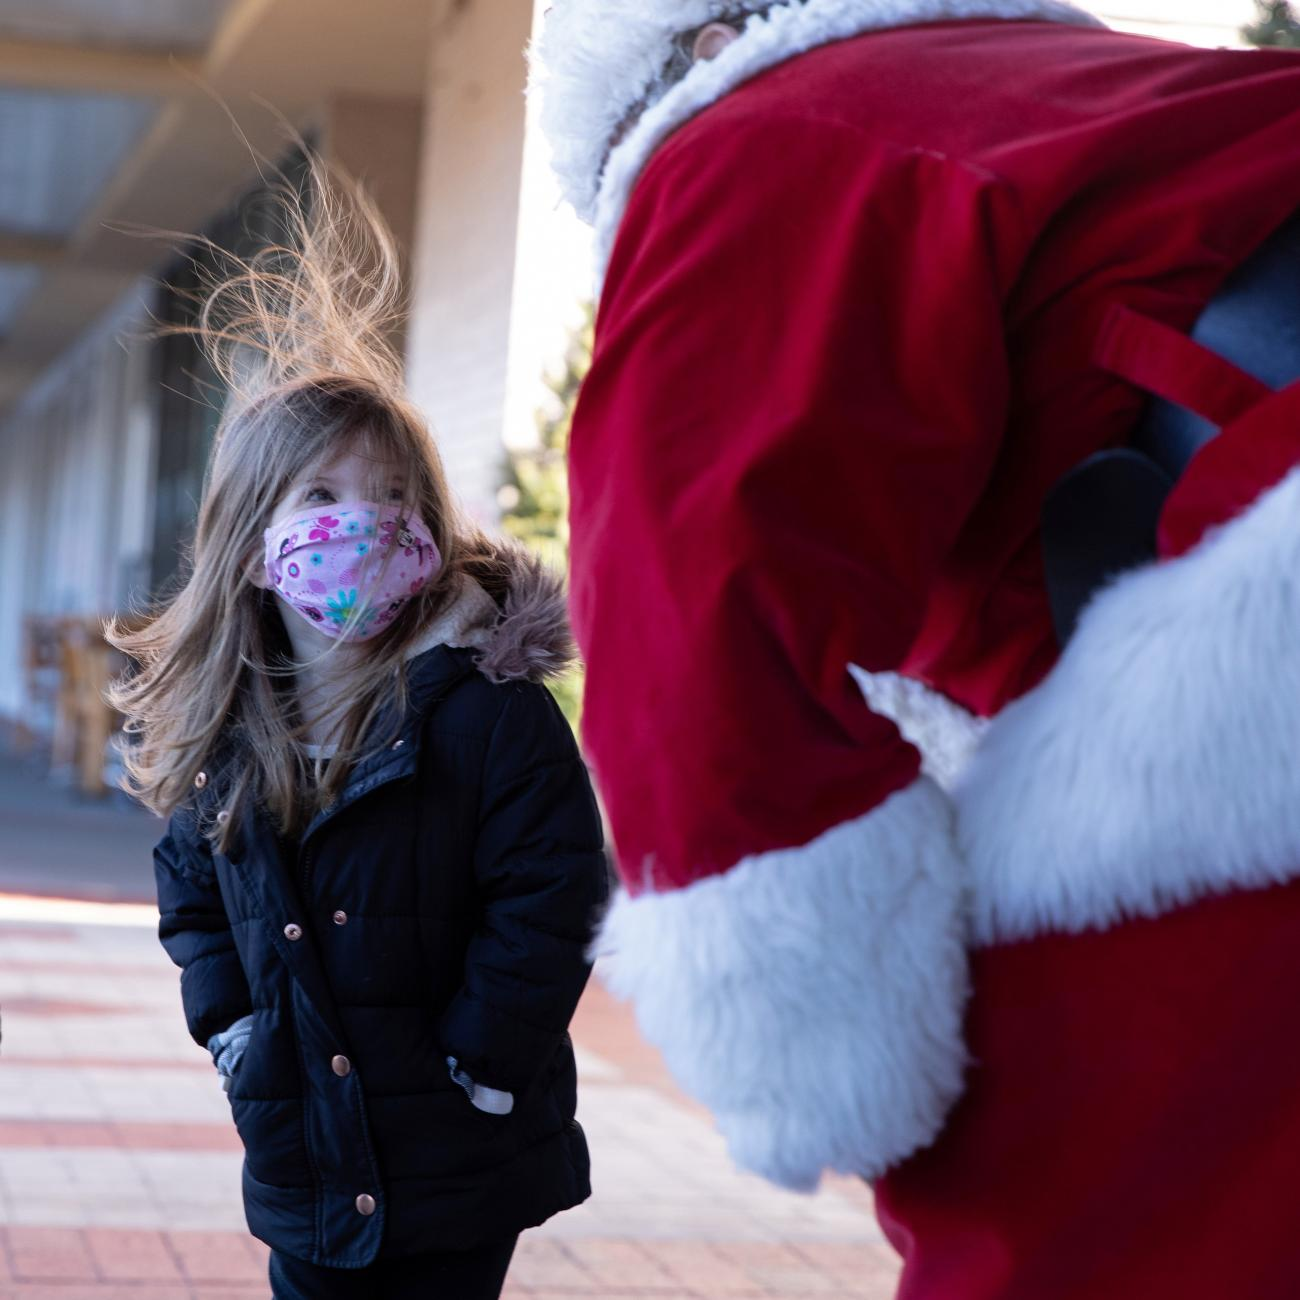 Santa Claus greets a young girl outside, both wearing masks as a precautionary measure in Queens as the global outbreak of the coronavirus disease continues in New York City on December 6, 2020.